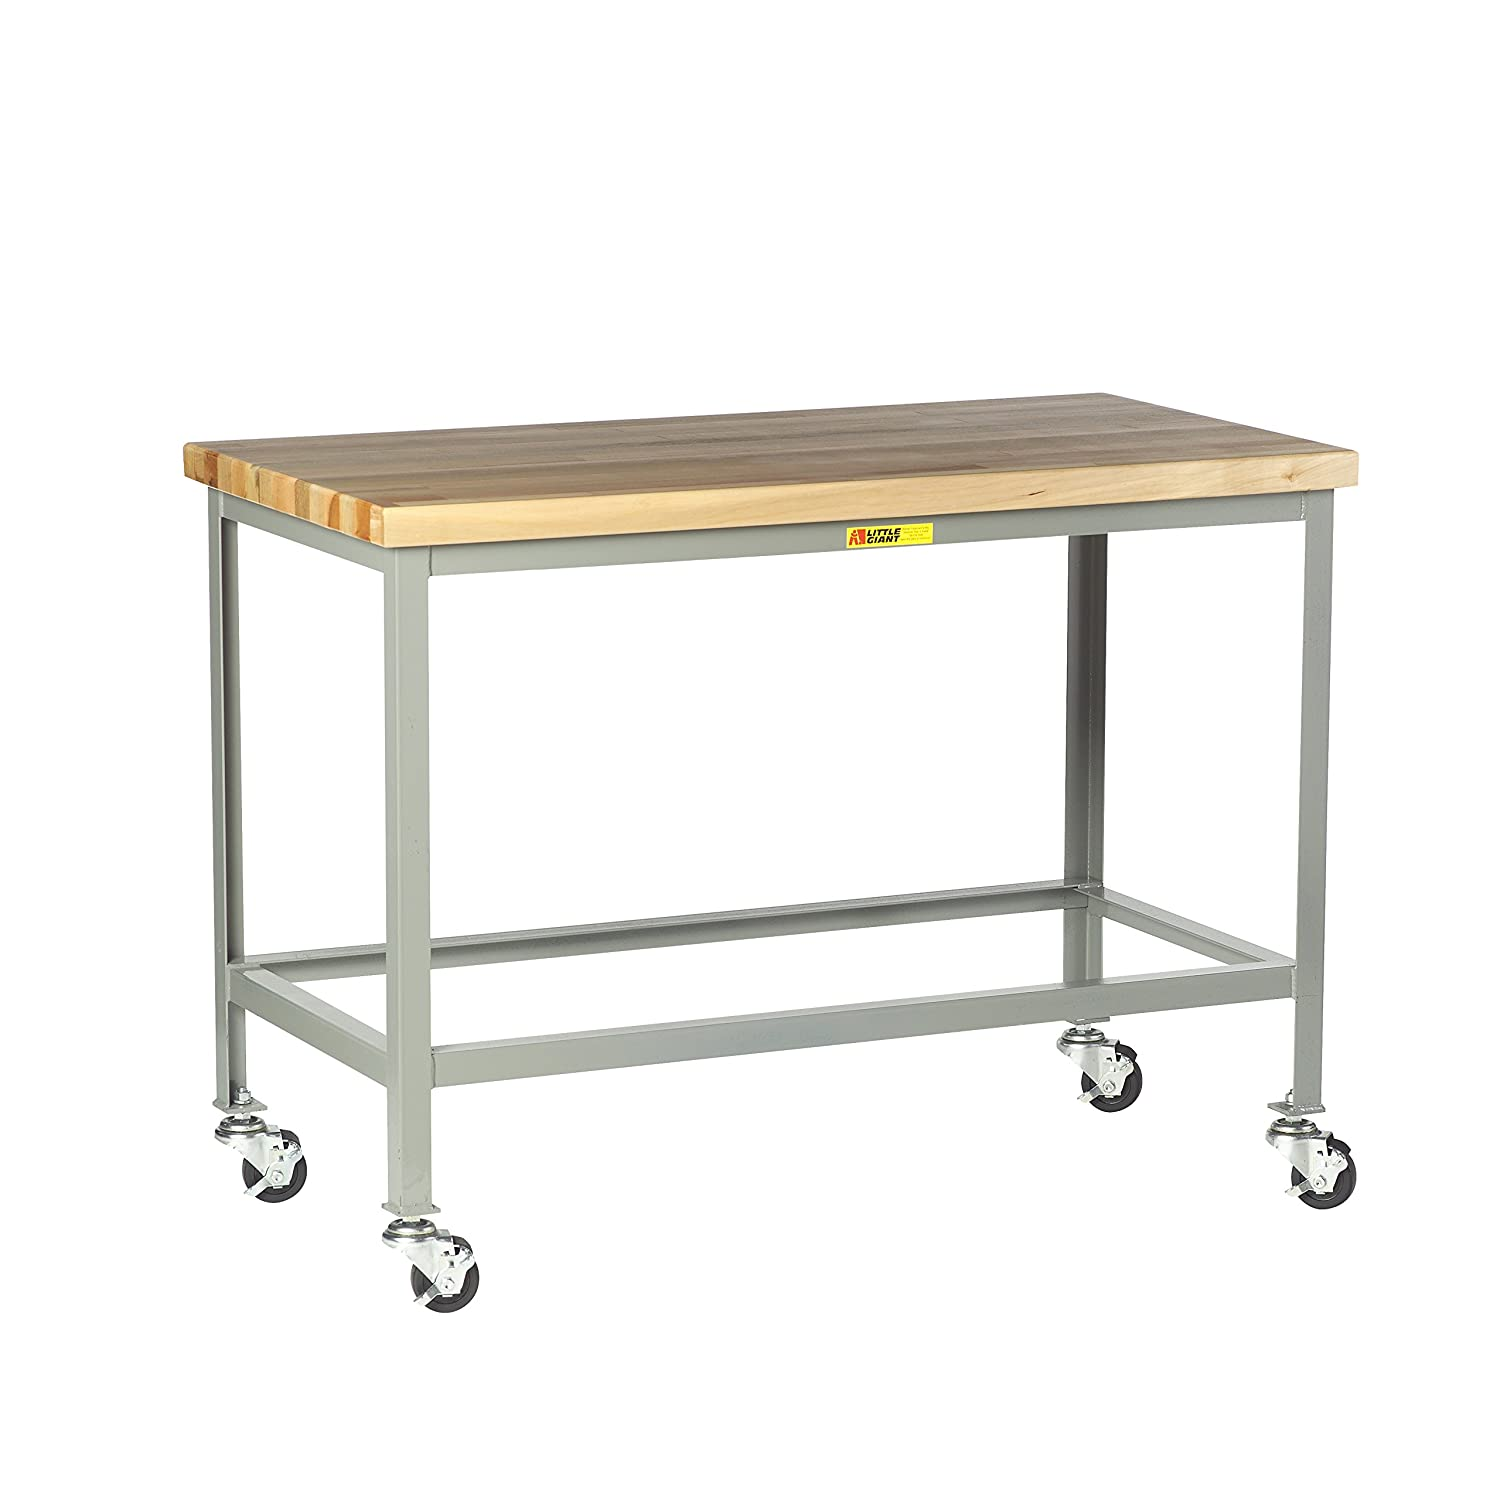 Little Giant WT-3048-3R Steel Max 82% OFF Mobile Top 1 Butcher Block Tables low-pricing